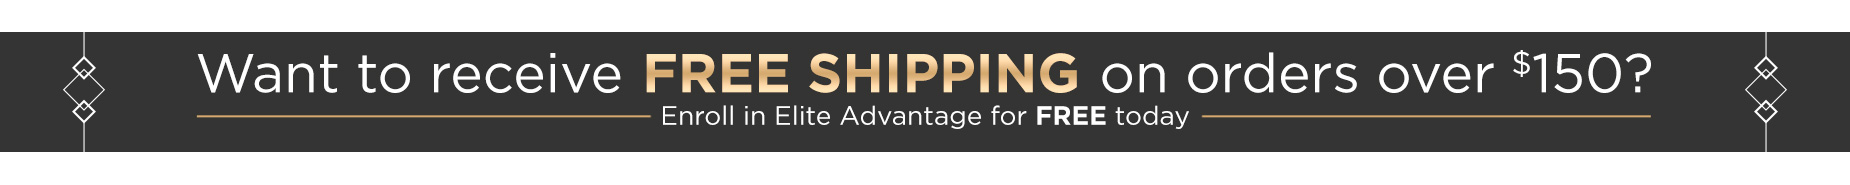 FREE SHIPPING on orders $150+ with Elite Advantage